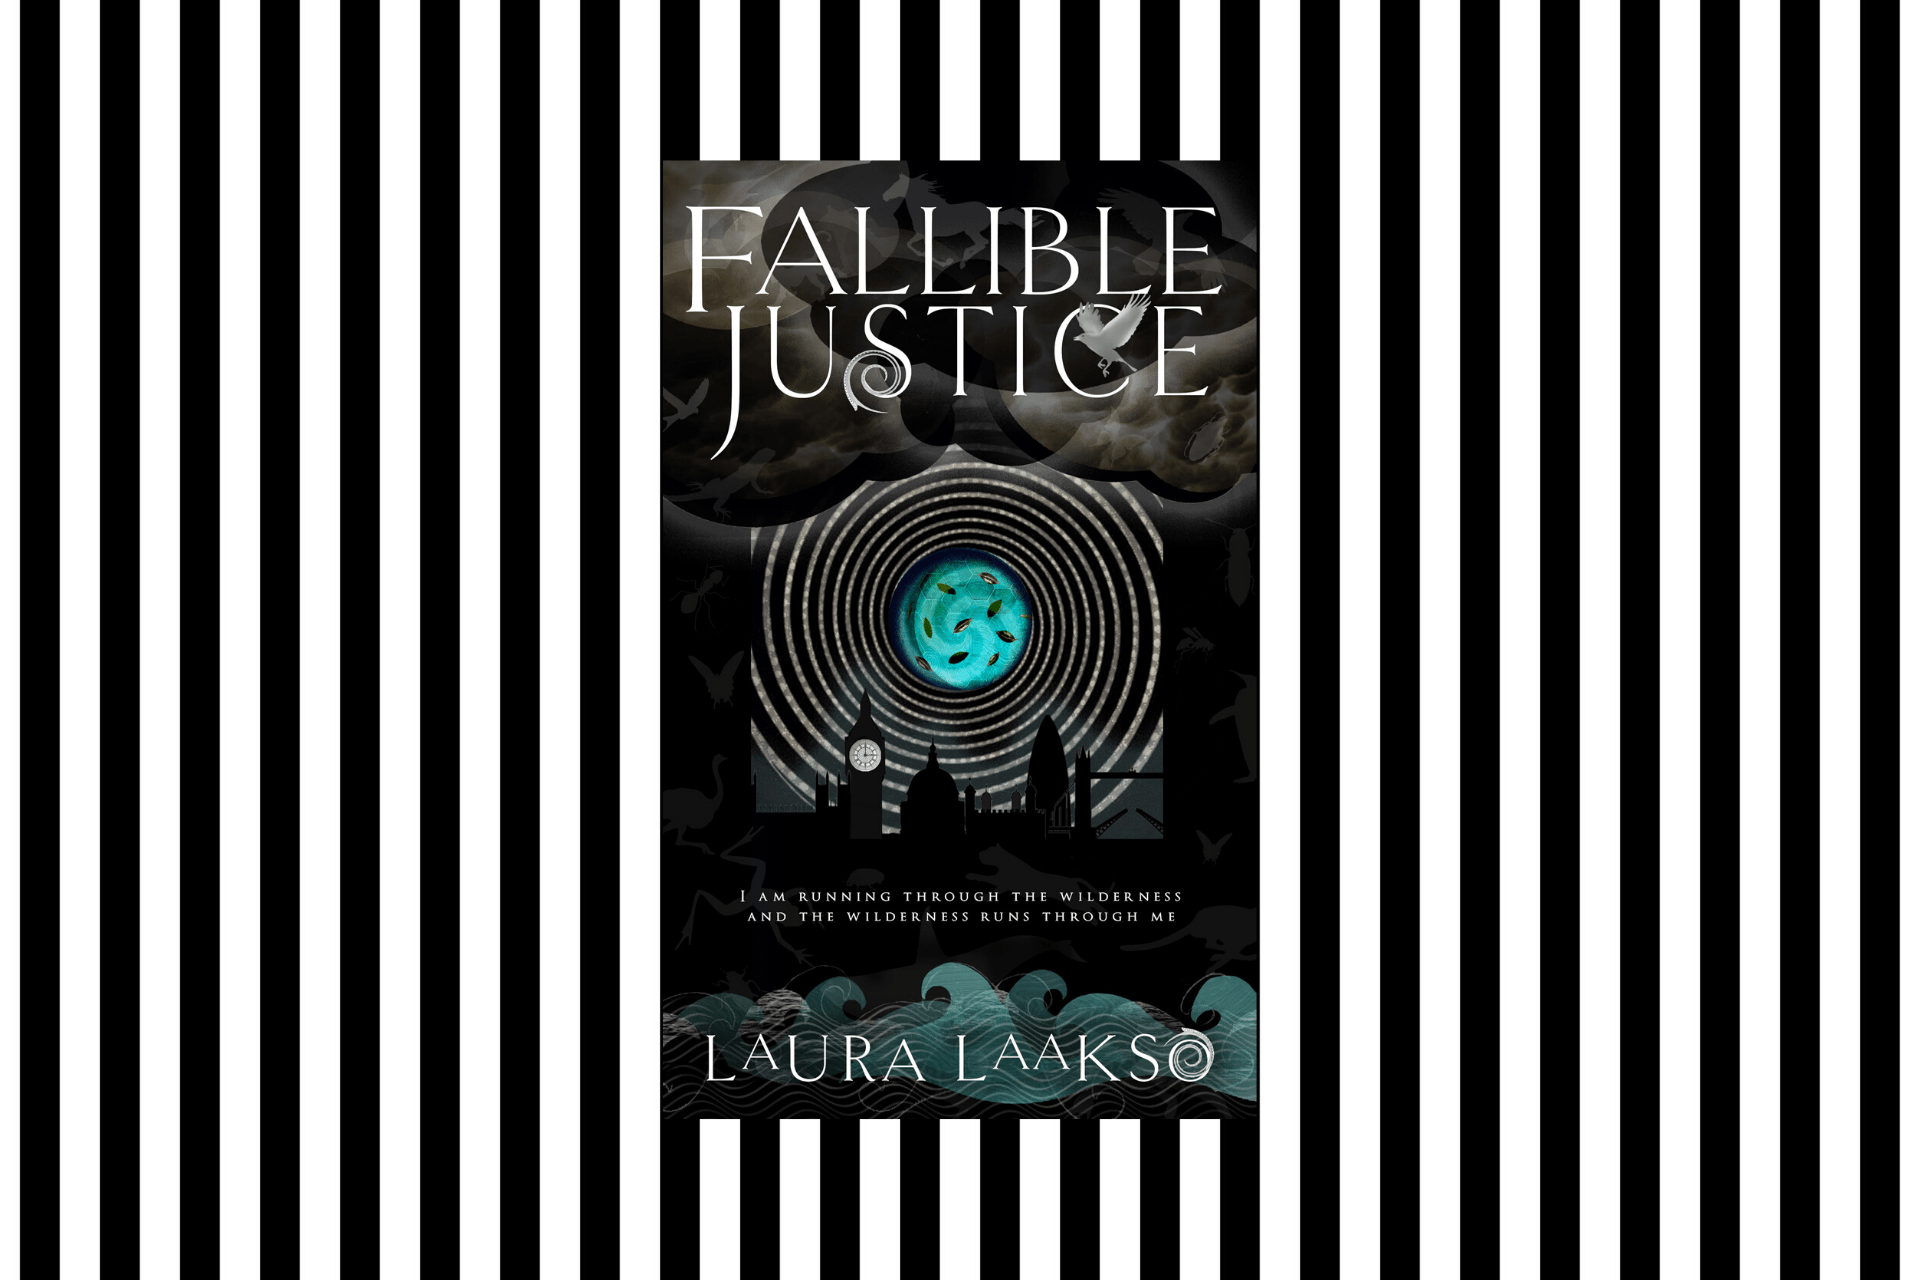 The cover of Fallible Justice by Laura Laakso